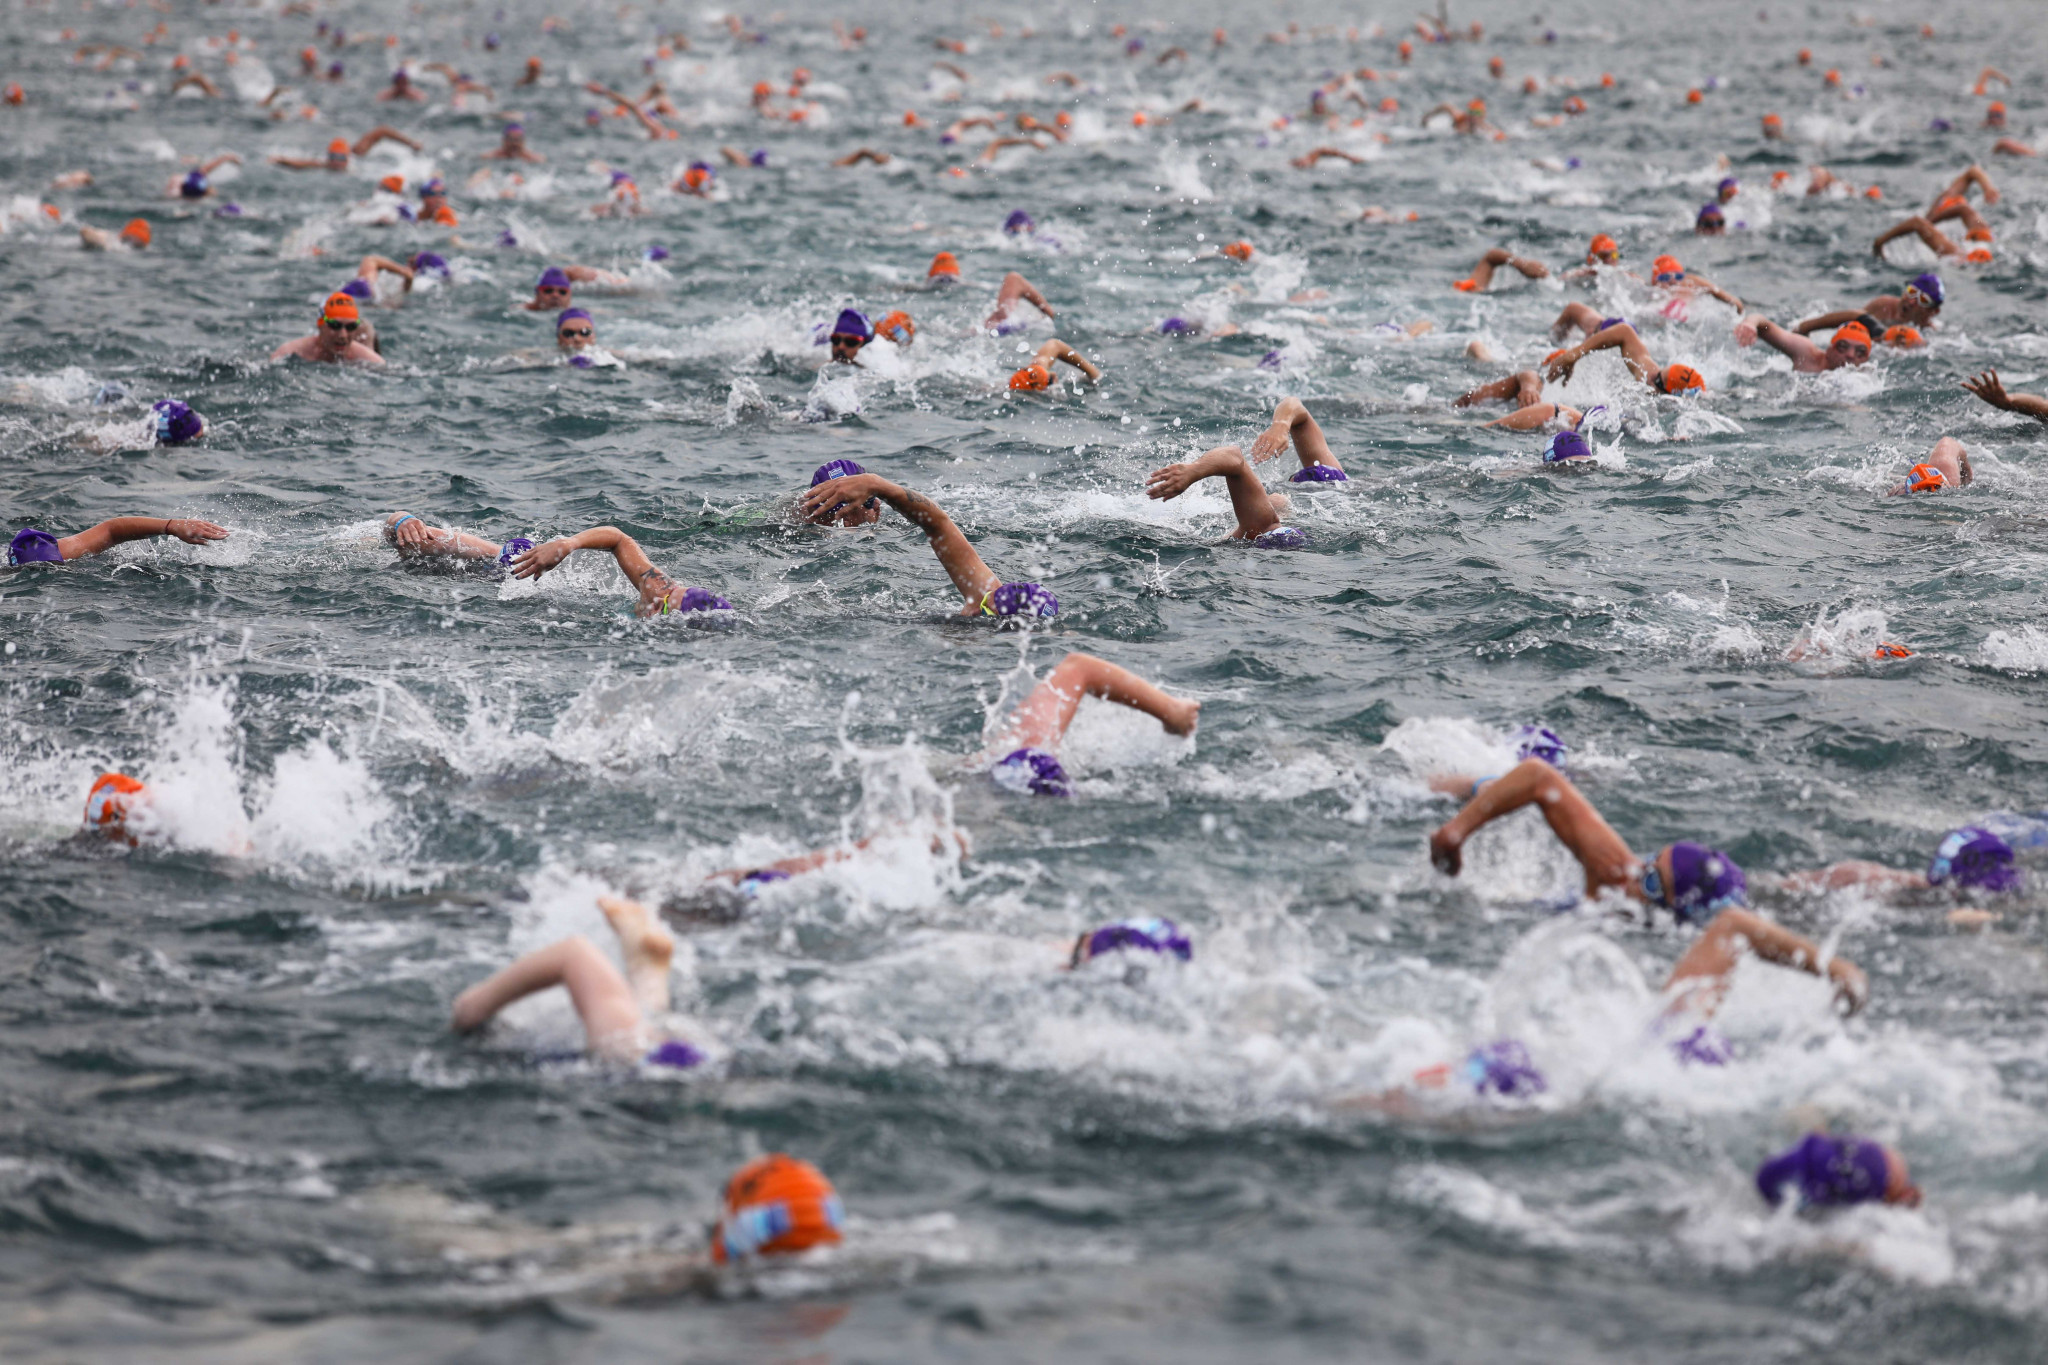 The Turkish Olympic Committee has announced that the international quota for the 2019 Cross-Continental Swimming Race was filled in under half-an-hour ©TOC